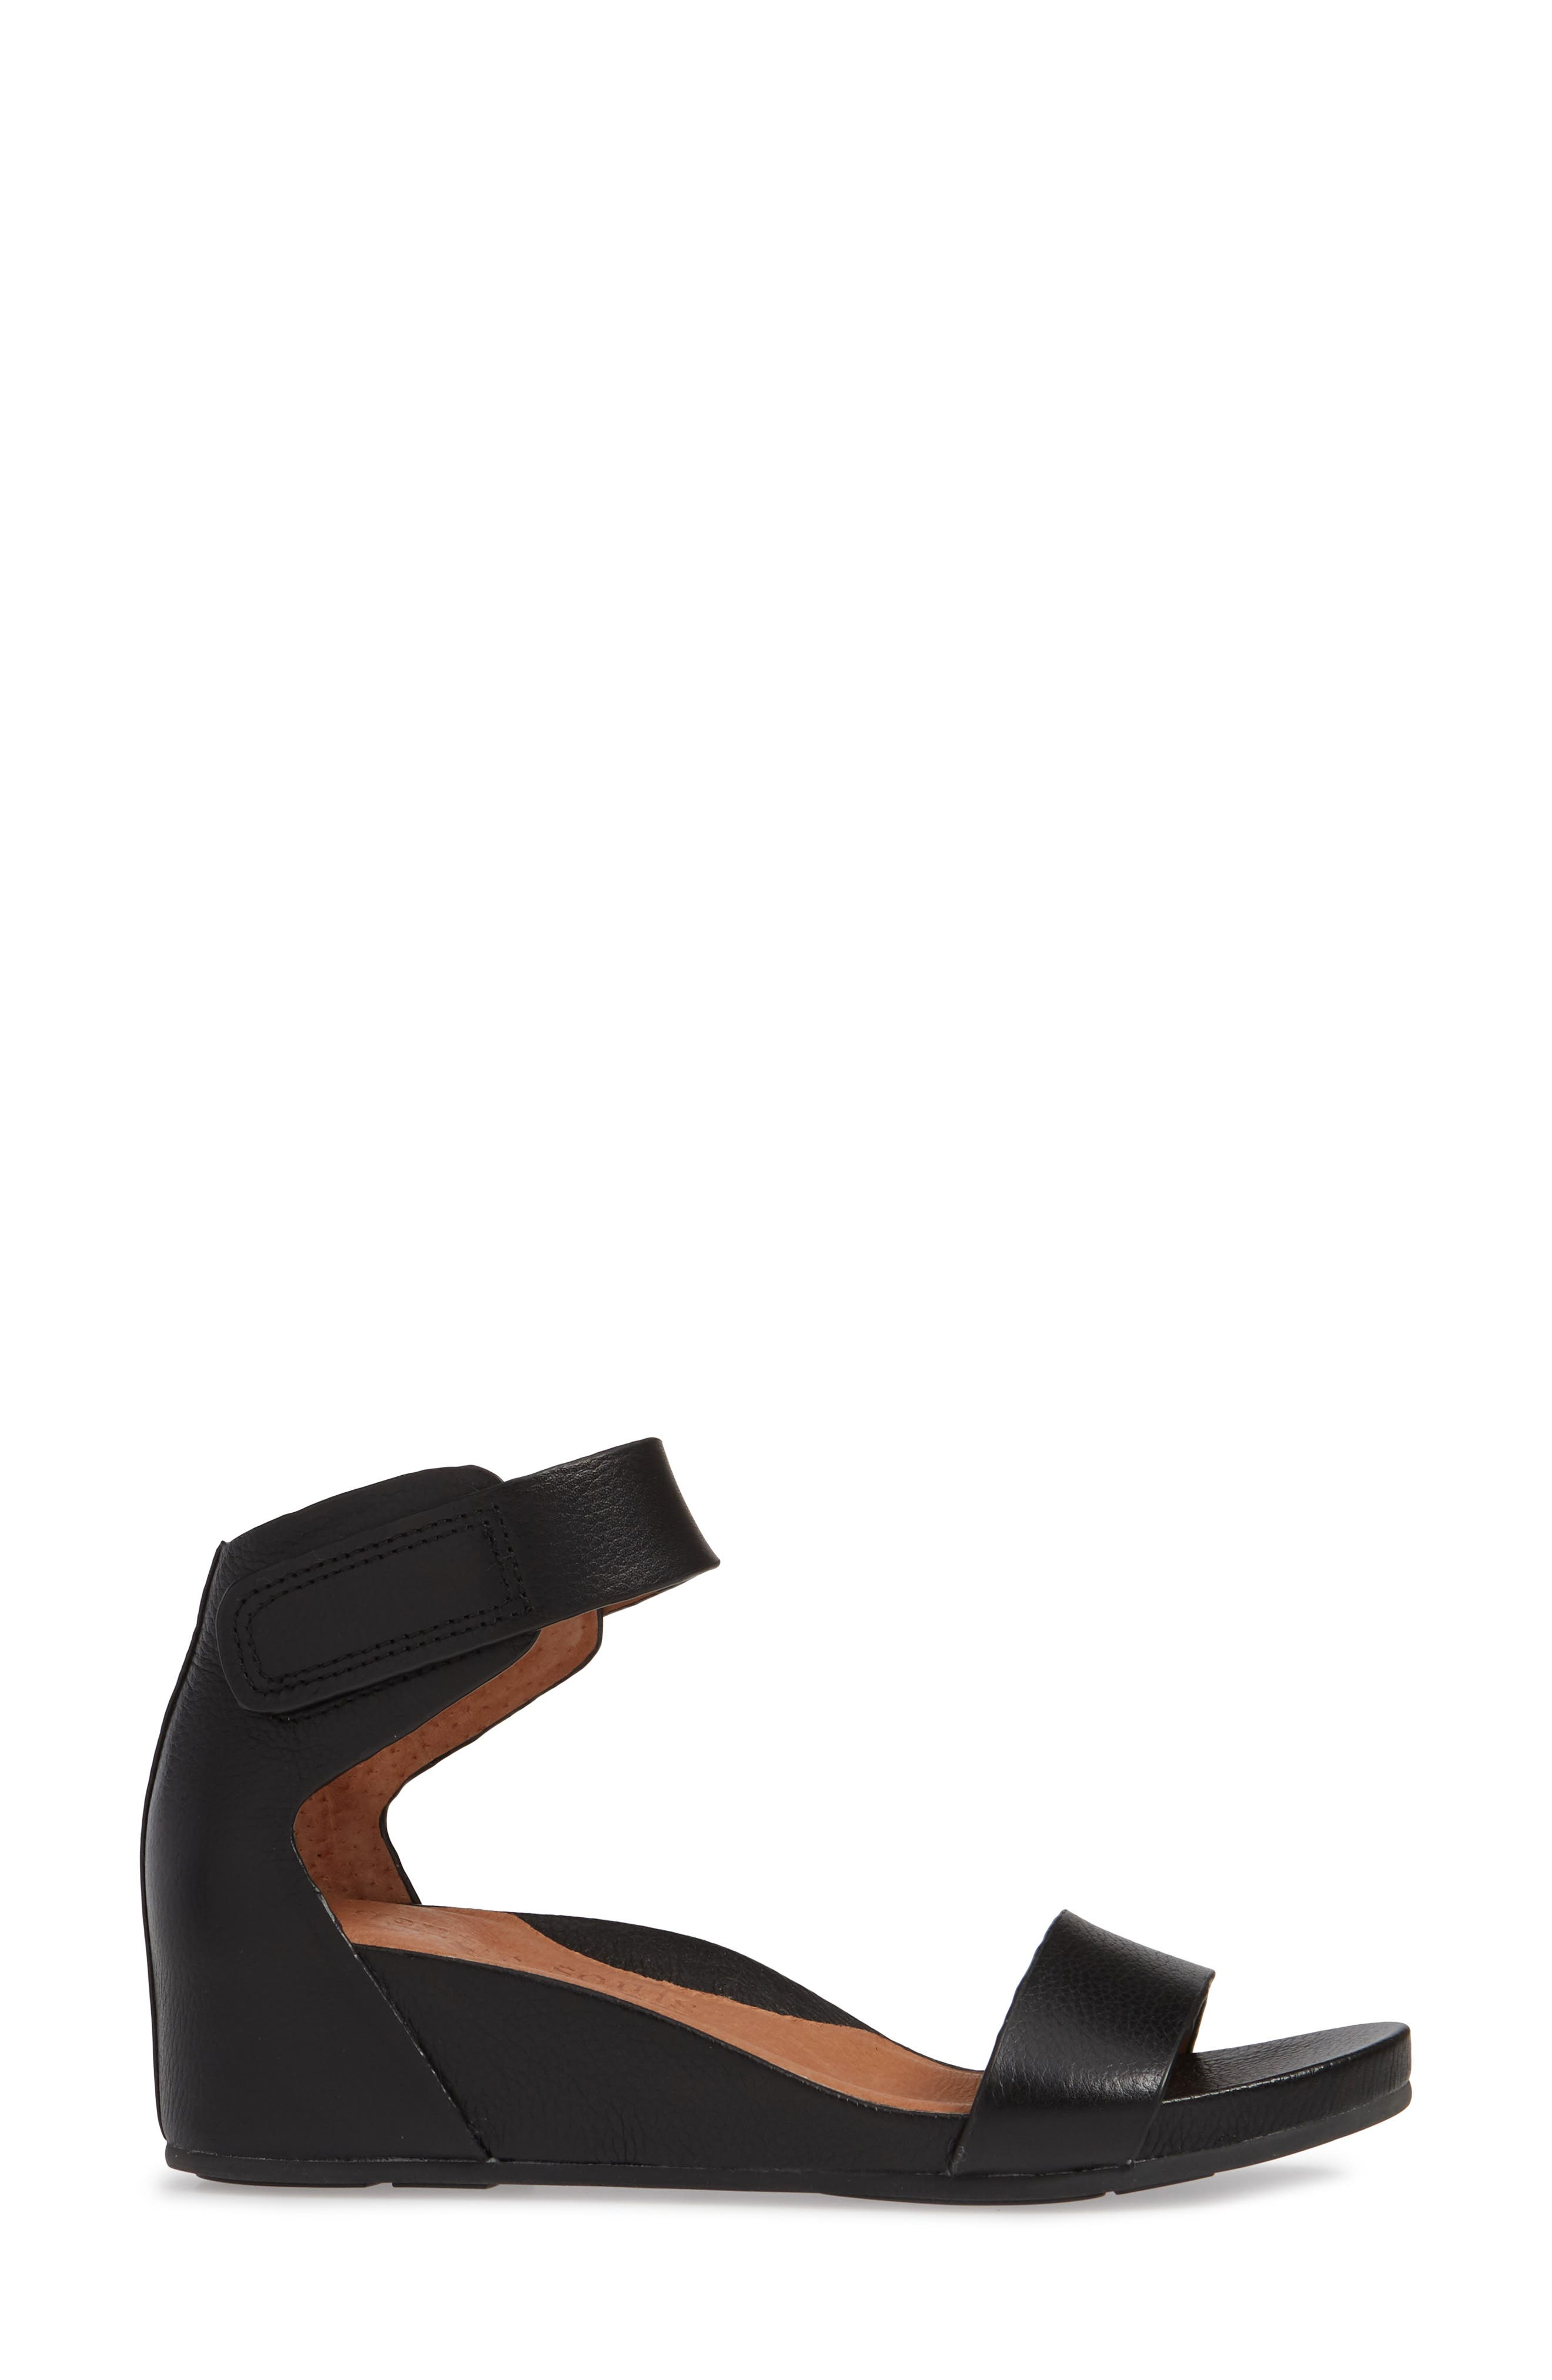 GENTLE SOULS SIGNATURE, Gianna Wedge Sandal, Alternate thumbnail 3, color, BLACK LEATHER